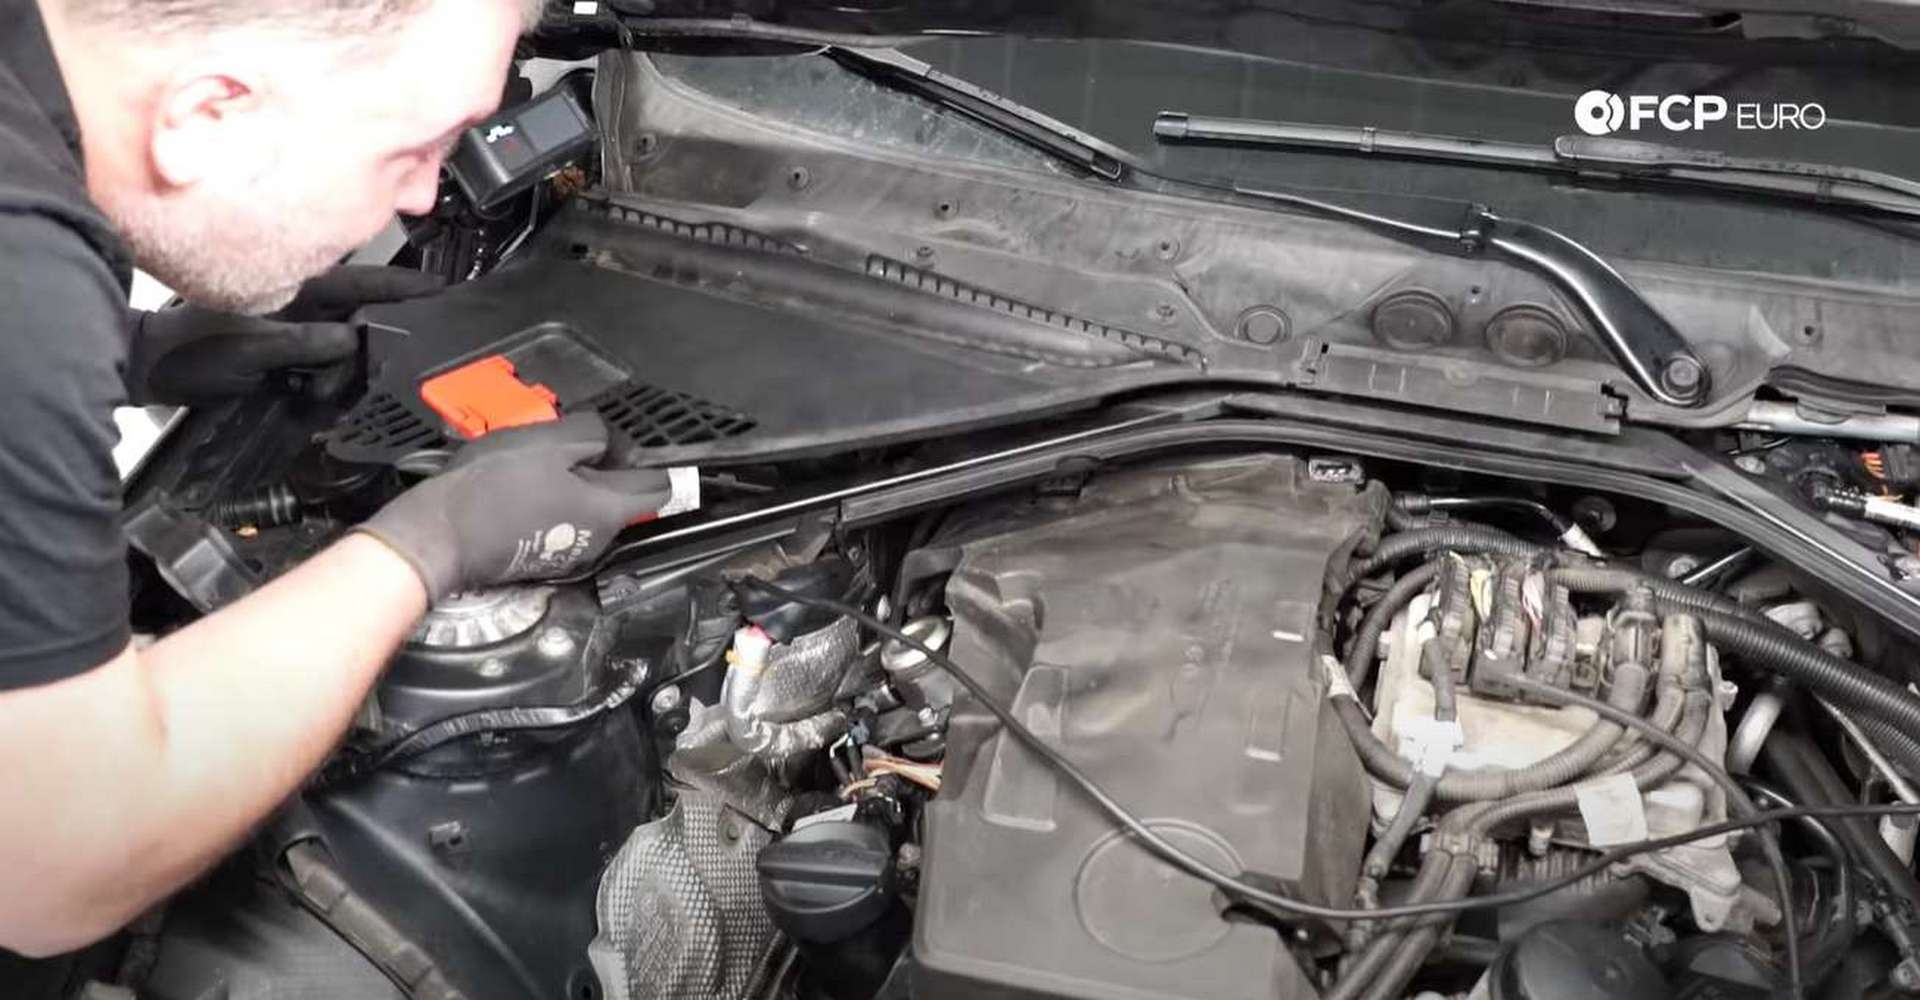 DIY BMW F30 High-Pressure Fuel Pump Replacement refitting the upper cowl pieces